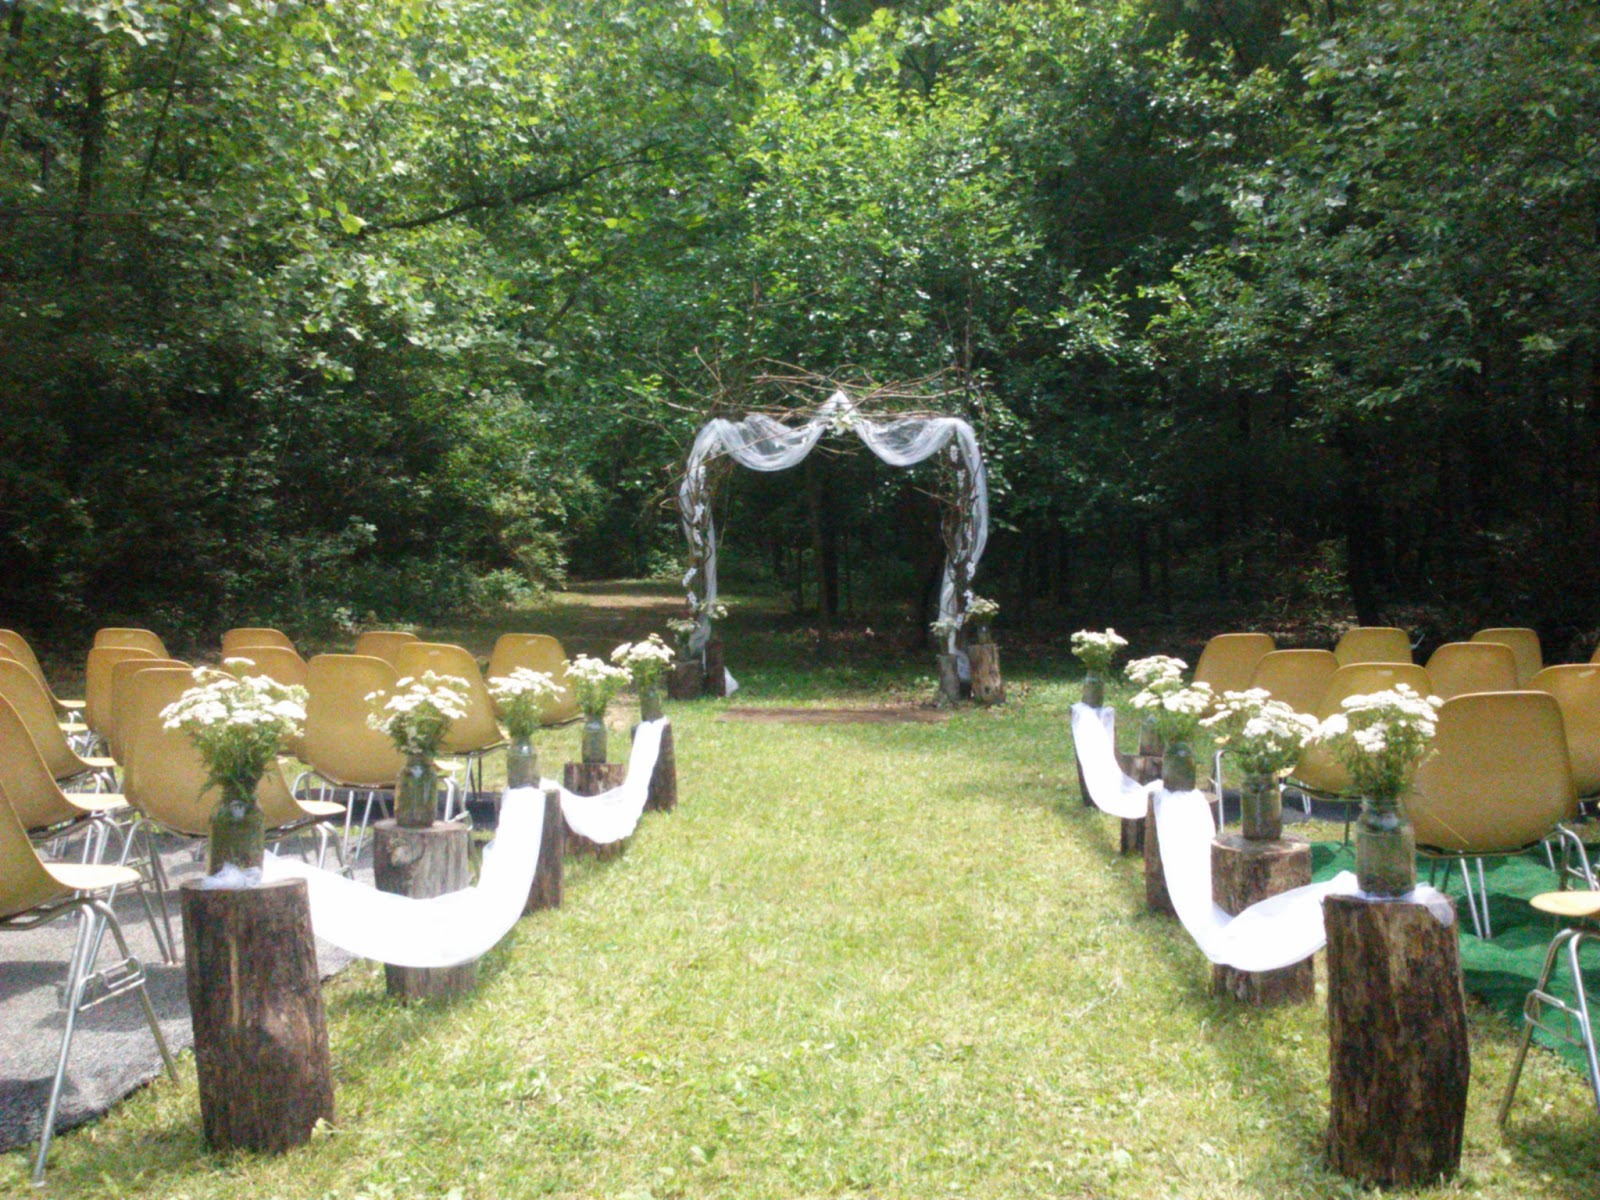 Handcrafted occasions budget rustic outdoor wedding for Outdoor wedding decorations on a budget